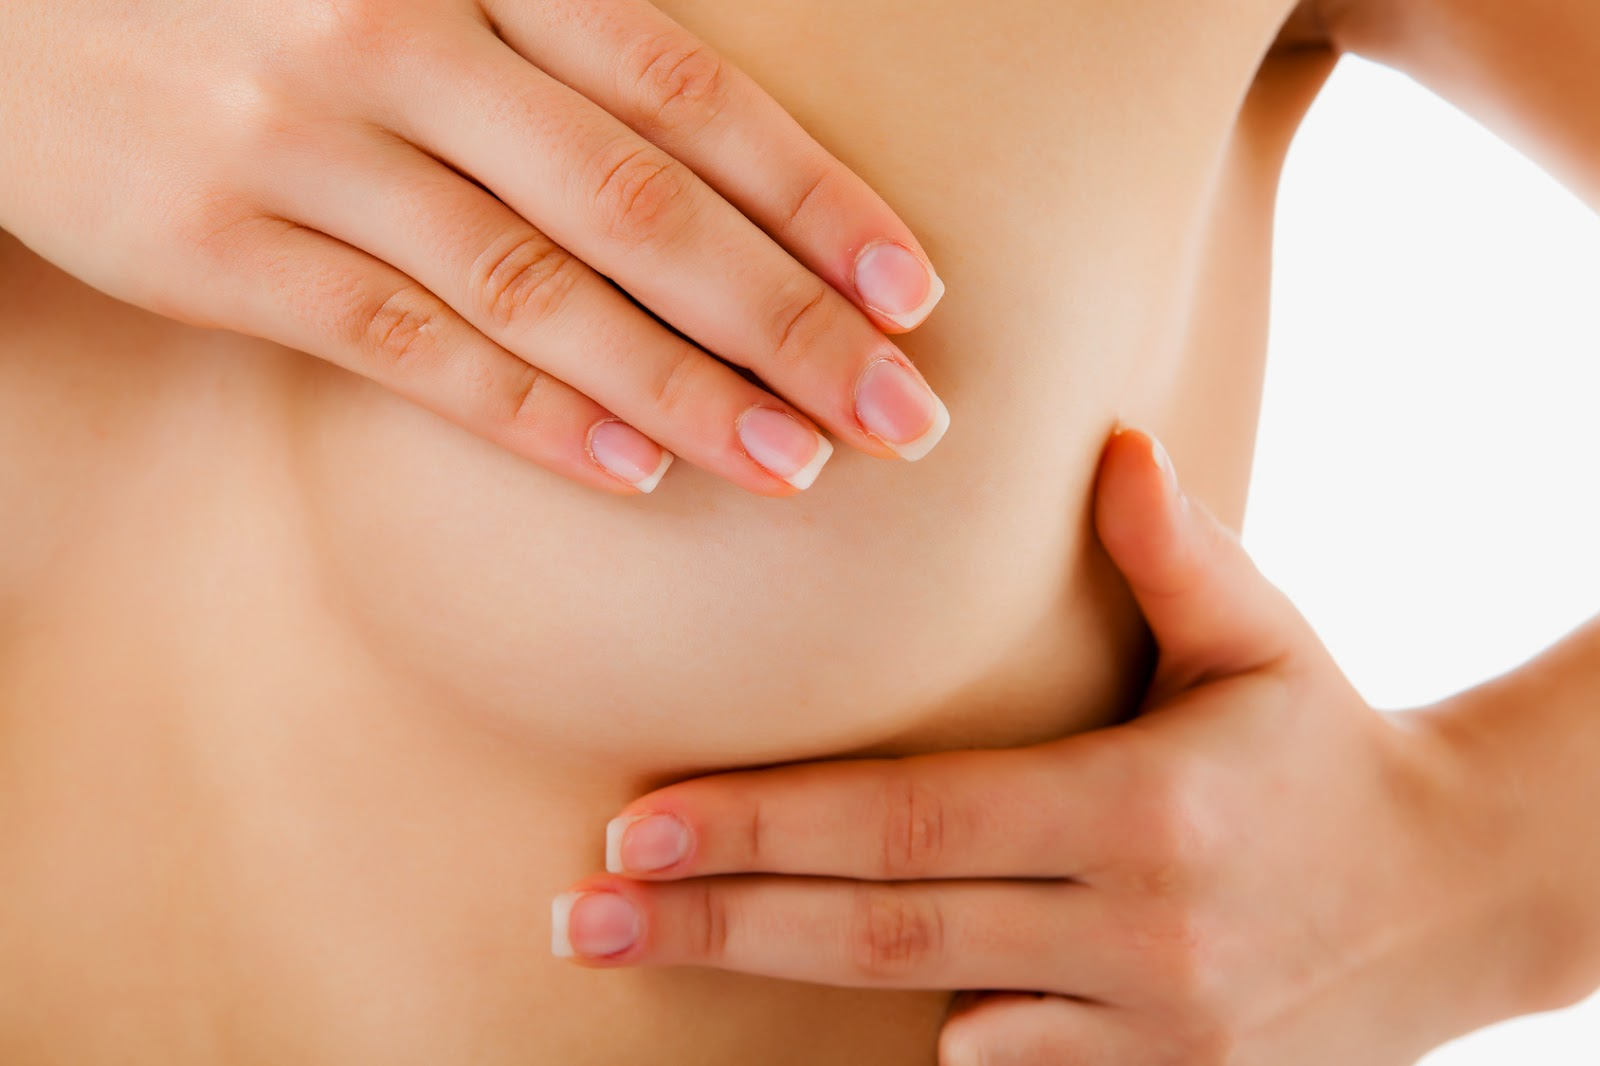 causes of breast cancer, main causes of breast cancer,